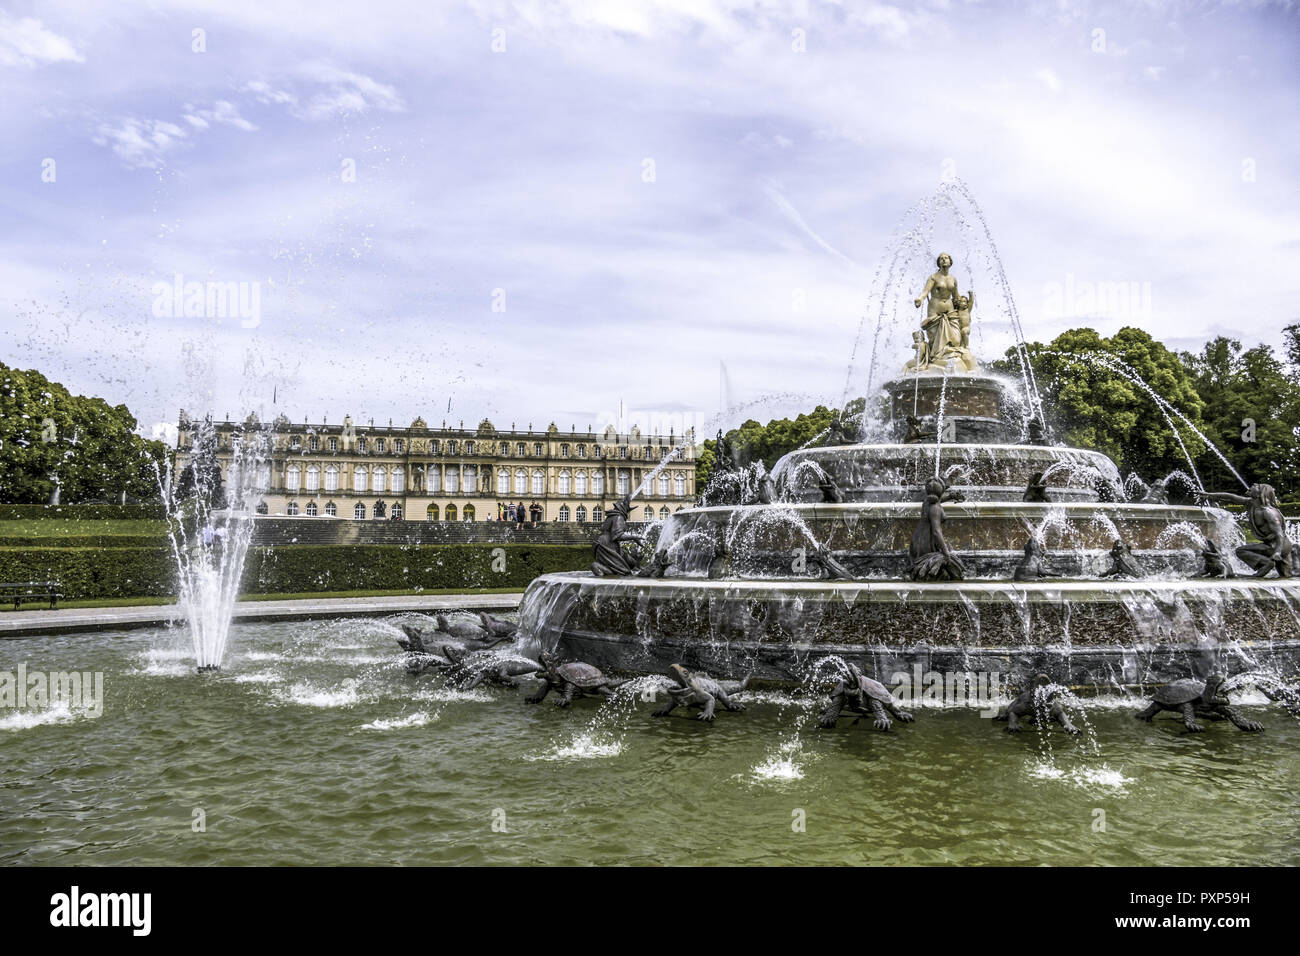 Latona Fountain, Herrenchiemsee Palace, Herreninsel, Gentleman s Island, Lake Chiemsee, Chiemgau, Upper Bavaria, Germany, Europe - Stock Image